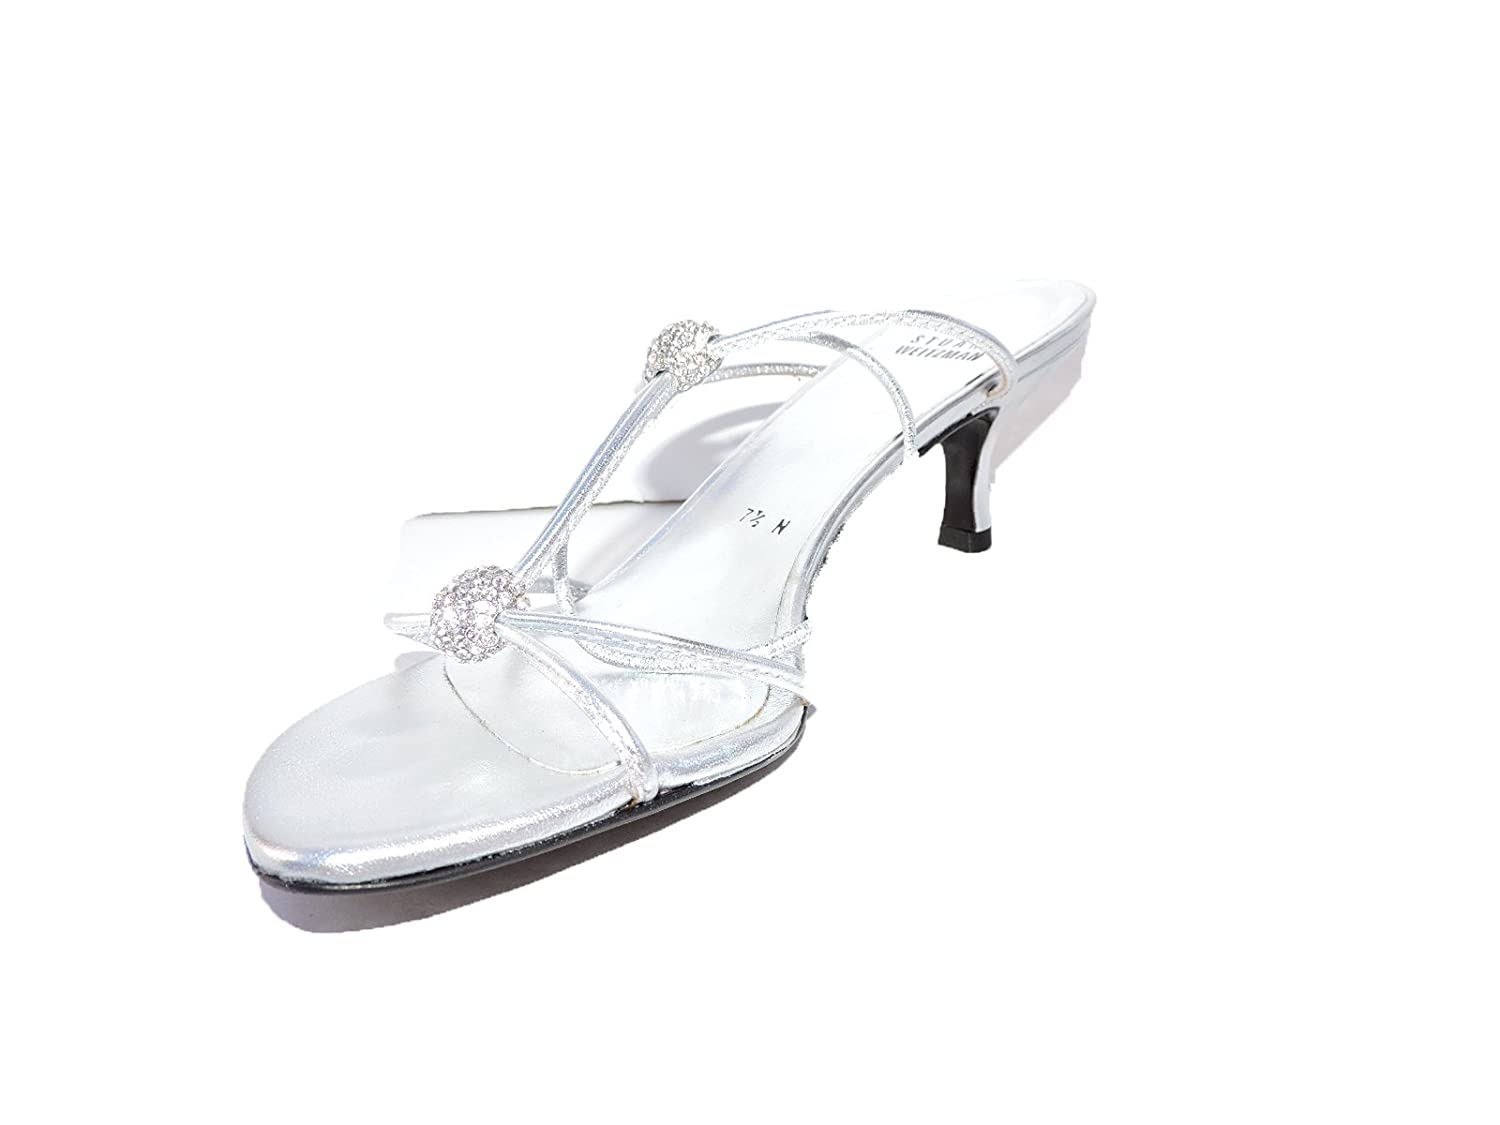 97f2408d72f Amazon.com  Stuart Weitzman Womens TeeHee Silver Jeweled Open Toe Heels  Slingback s Sandals Size 8 N